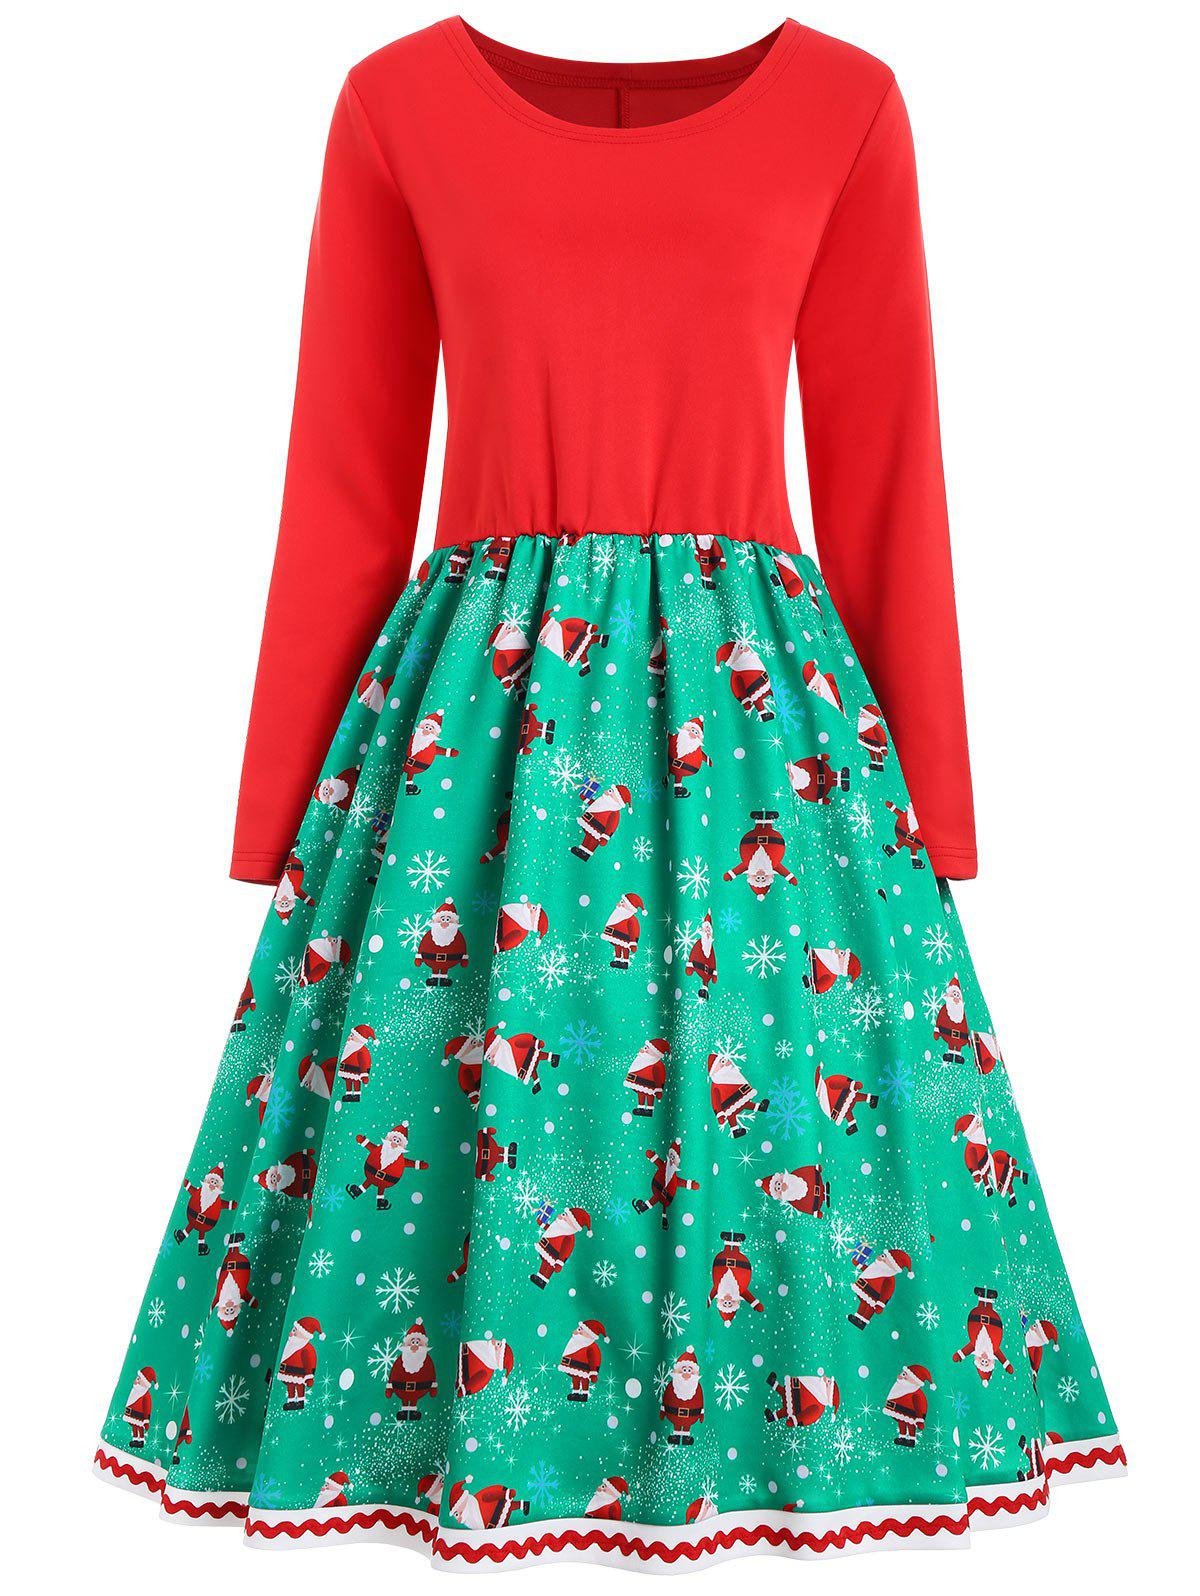 Christmas Snowflake Santa Claus Vintage Plus Size DressWOMEN<br><br>Size: 4XL; Color: RED AND GREEN; Style: Vintage; Material: Polyester; Silhouette: A-Line; Dresses Length: Mid-Calf; Neckline: Round Collar; Sleeve Length: Long Sleeves; Pattern Type: Print; With Belt: No; Season: Fall,Winter; Weight: 0.5700kg; Package Contents: 1 x Dress;